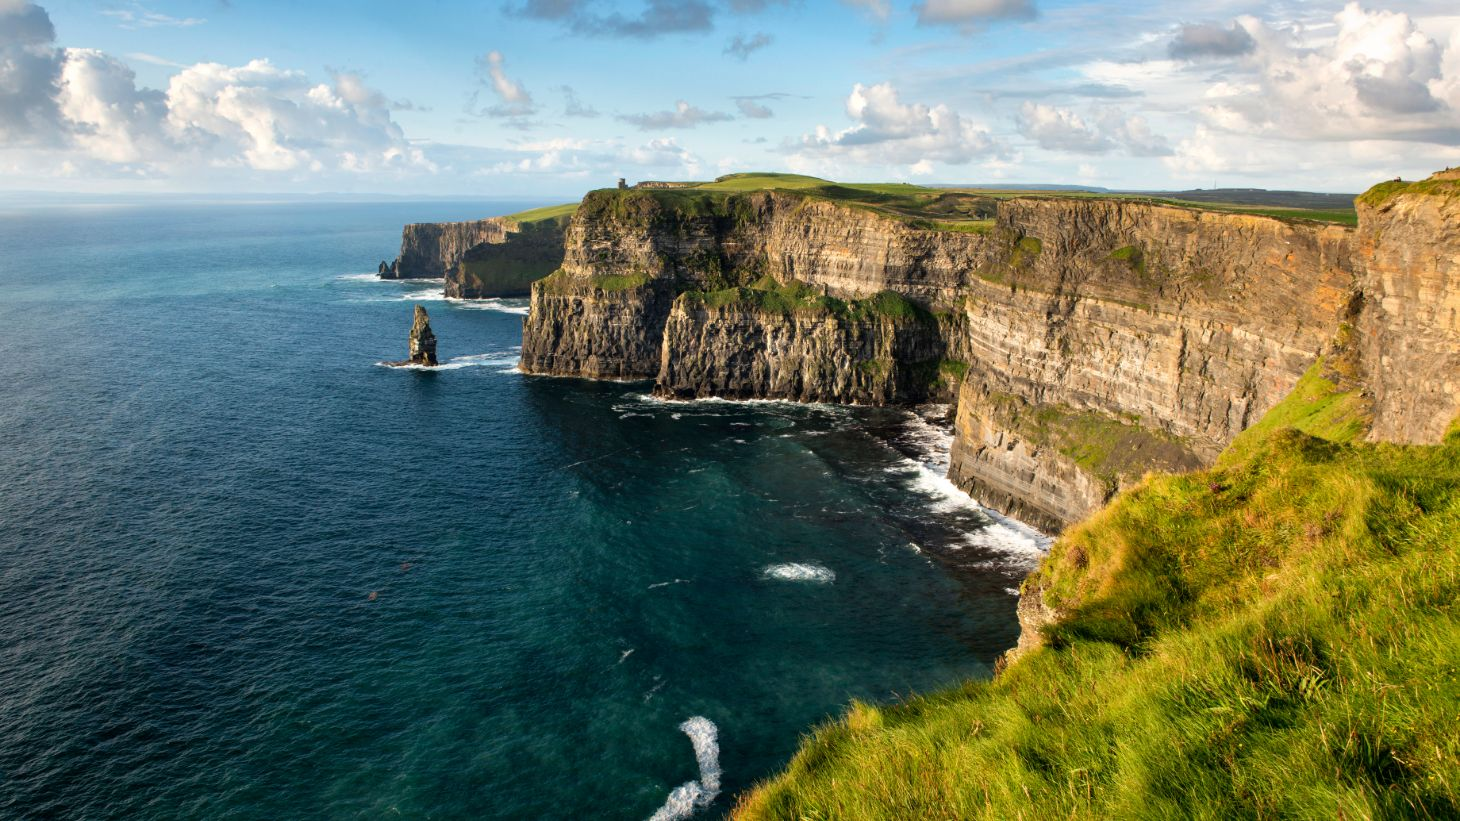 No trip to Clare is complete without seeing the incredible Cliffs of Moher